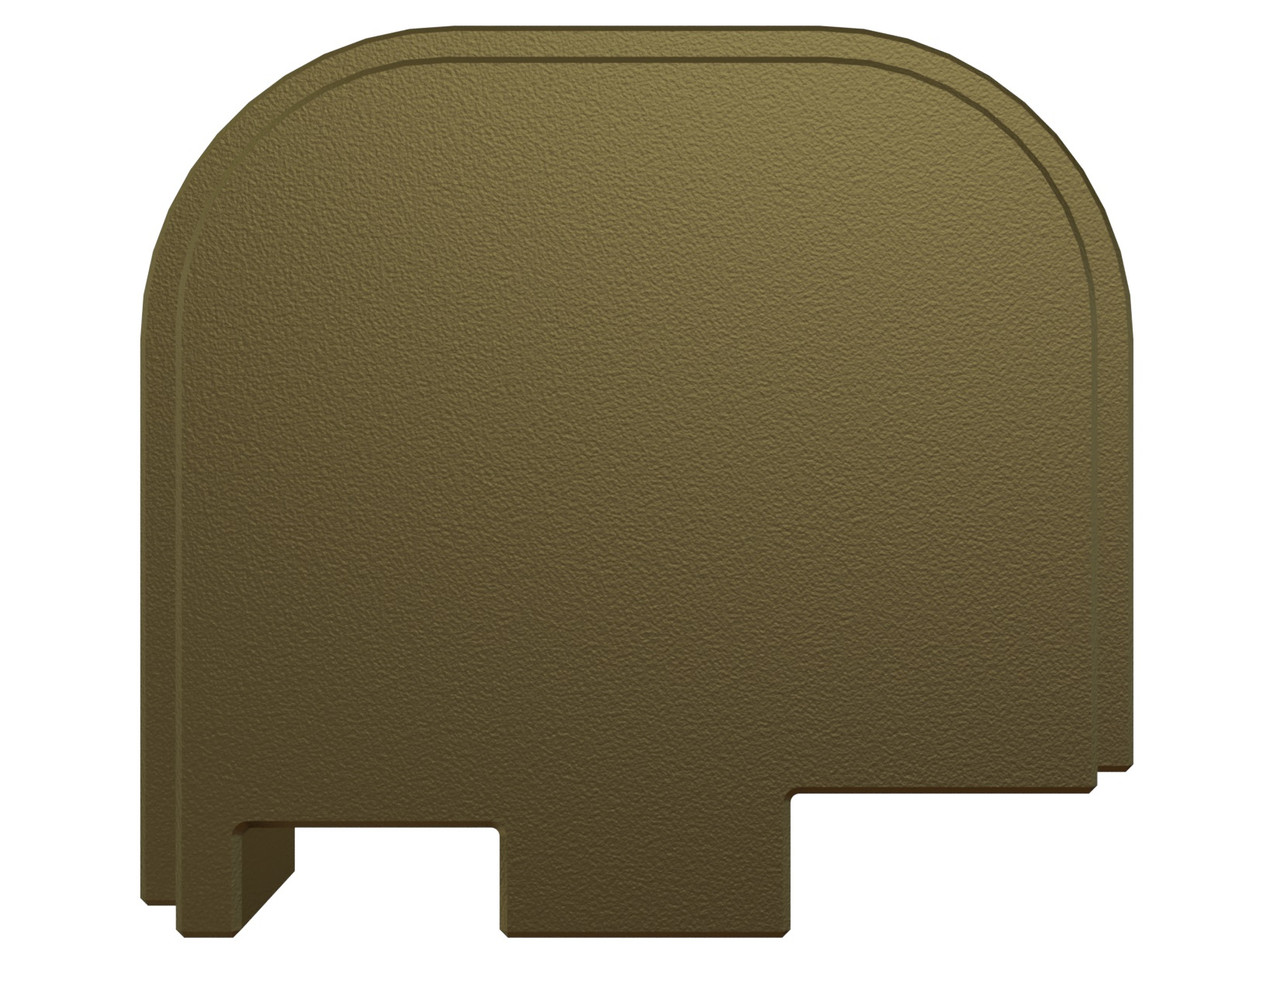 Rowe Tactical Glock Rear Slide Cover Plate G43 G43x G48 - Olive Drab Green